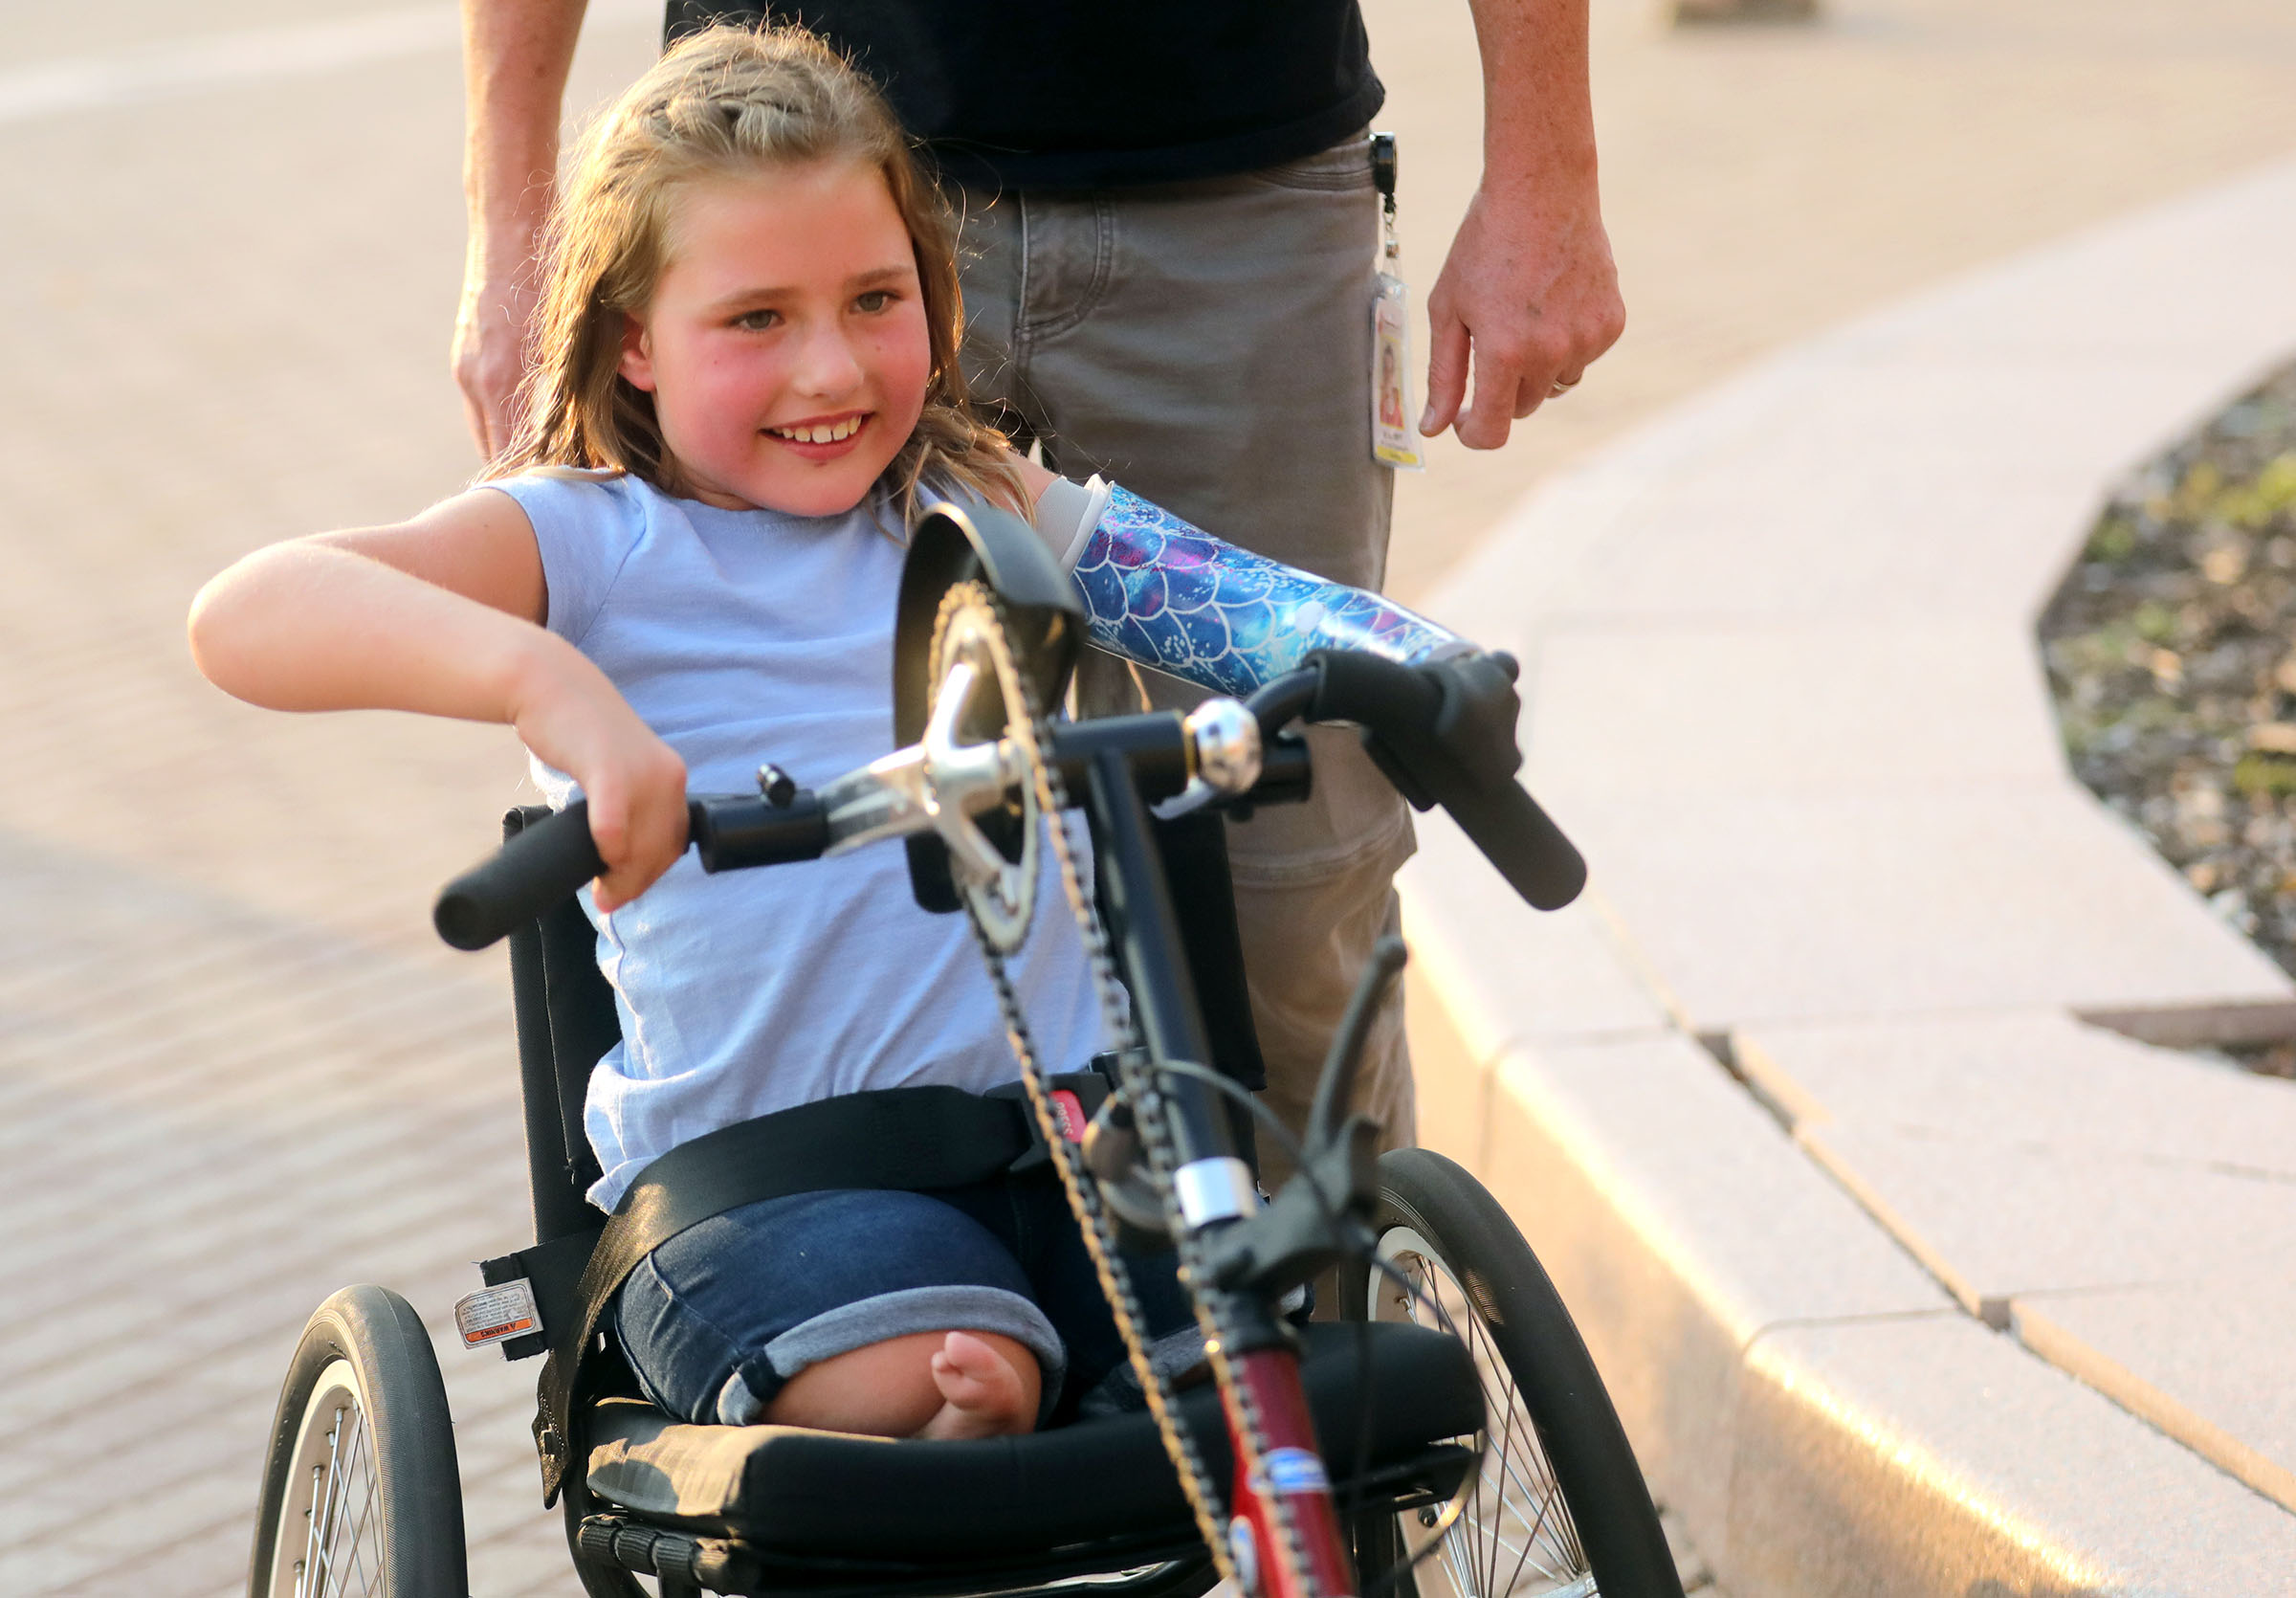 Jackie Woodward rides her adaptive bike outside of Shriners Hospitals for Children in Salt Lake City on Monday.